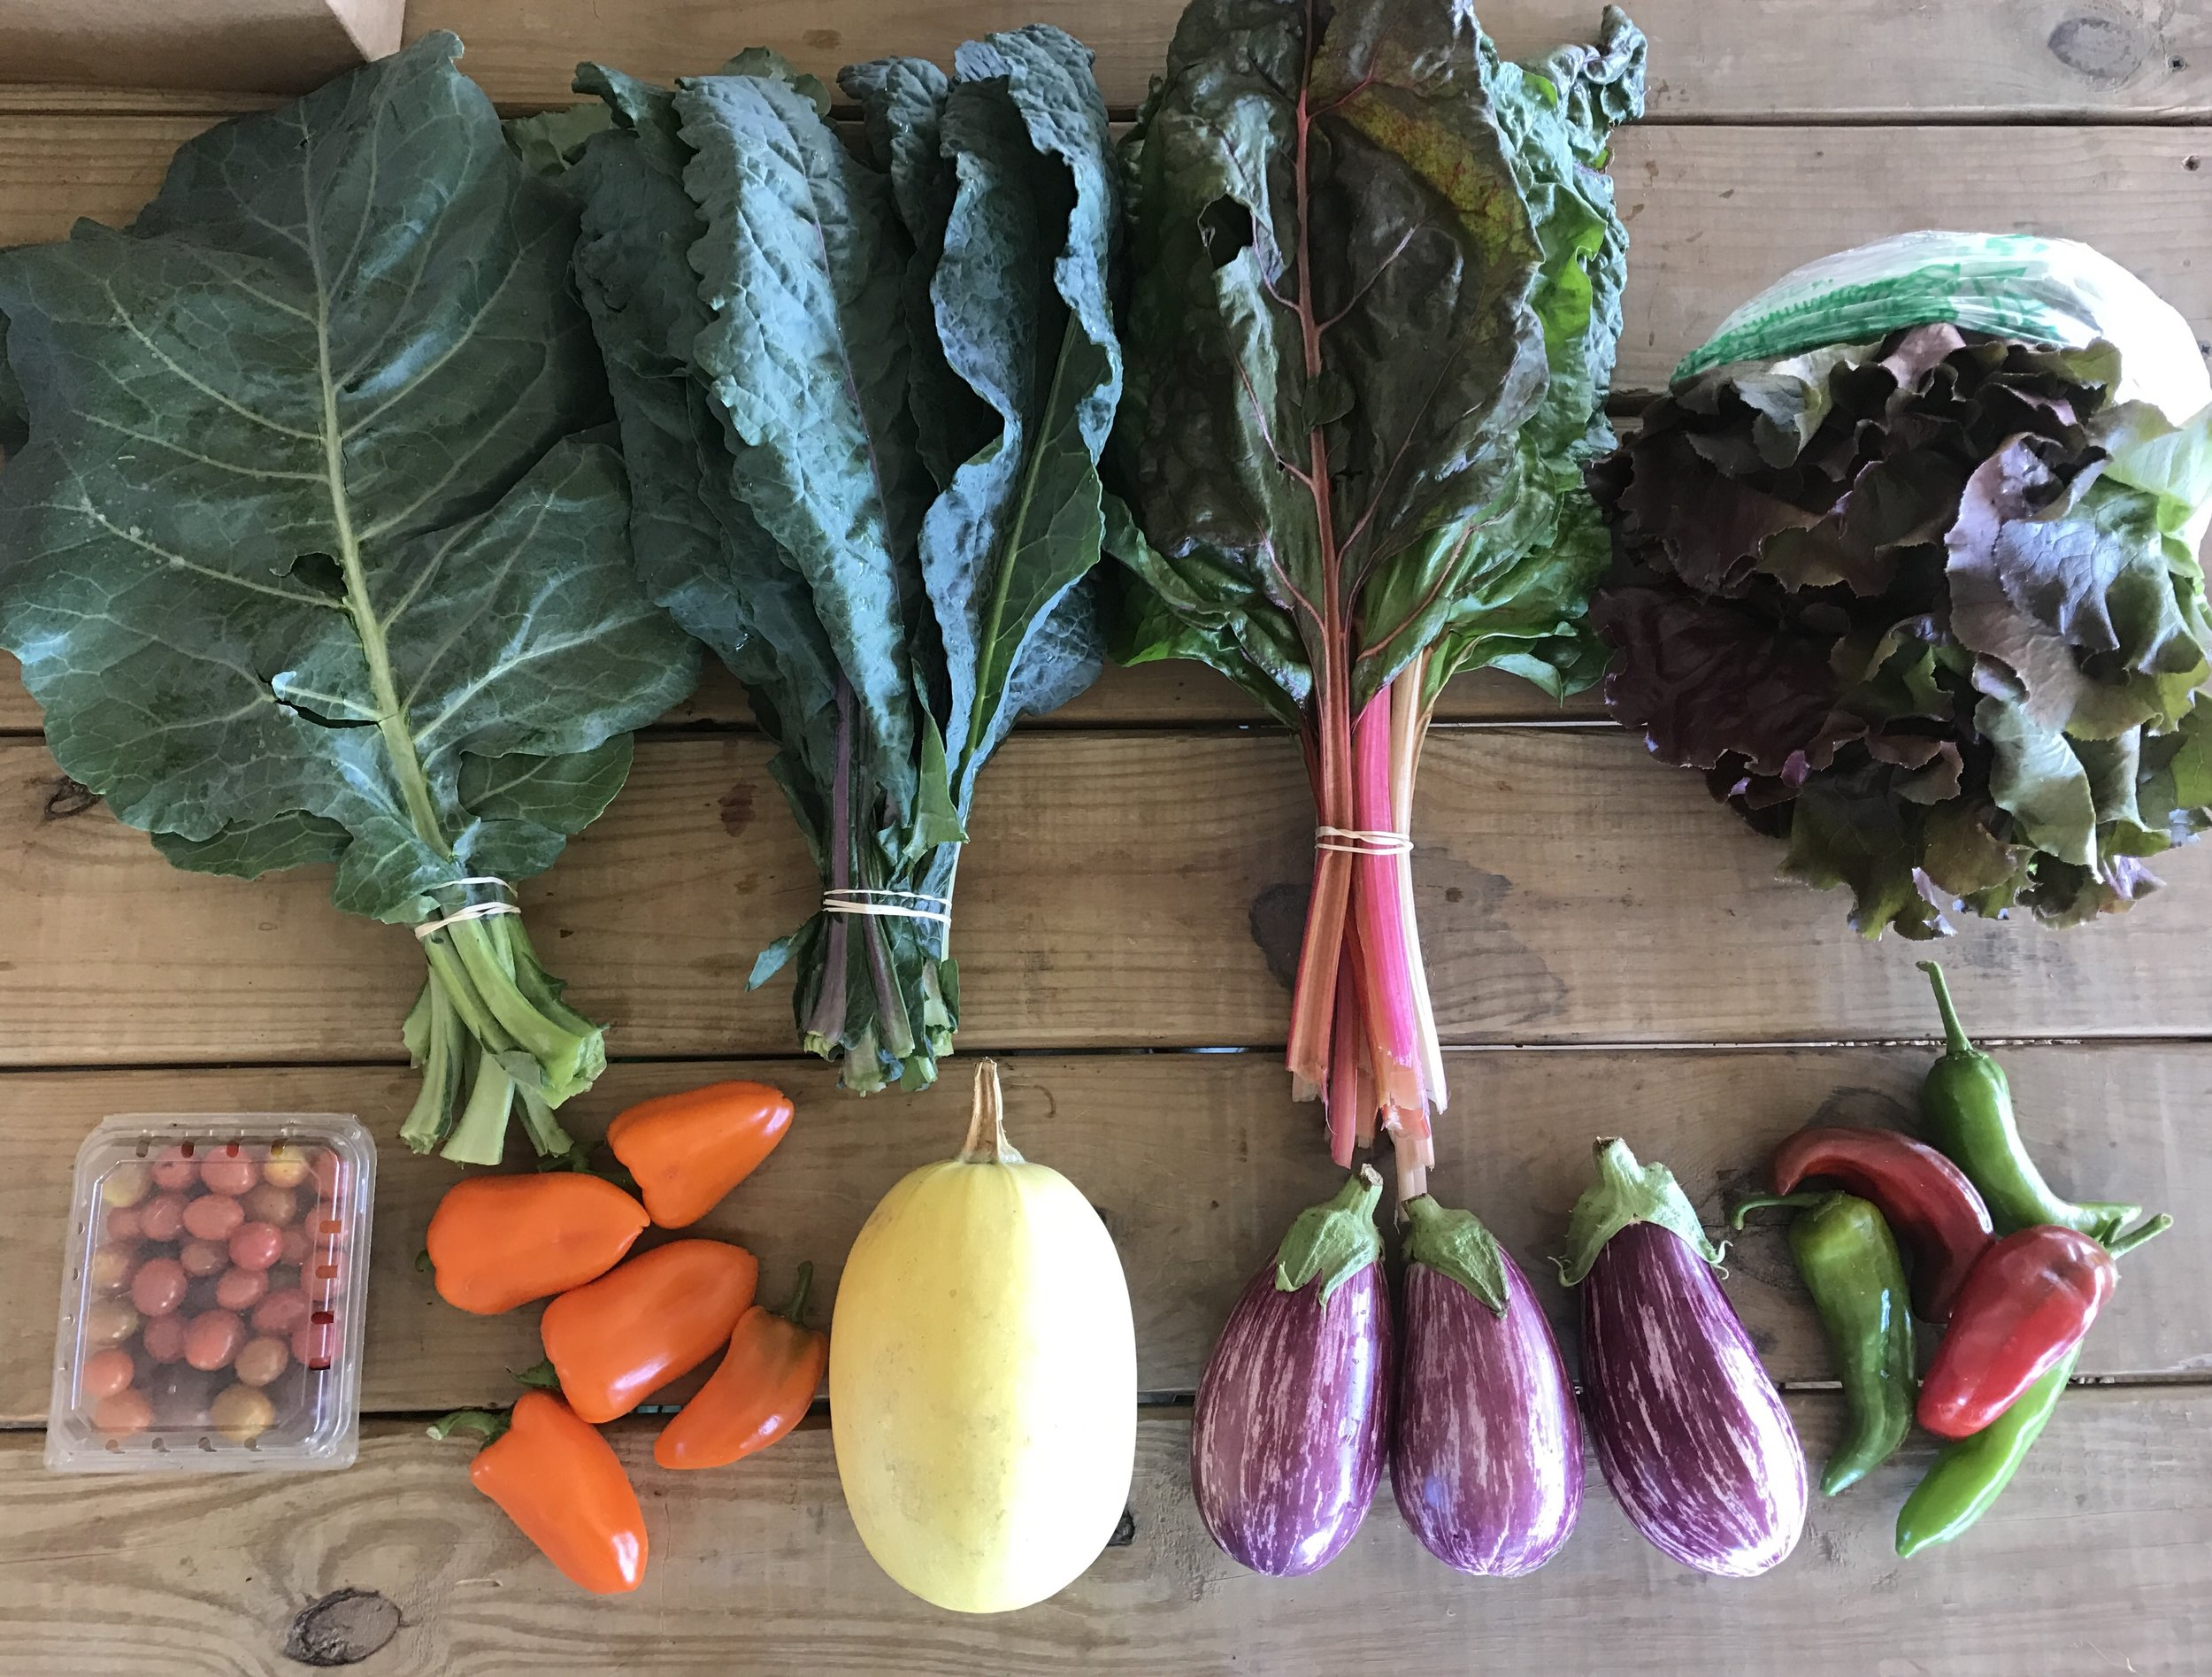 Top Row: Collard Greens, Toscano (Dino) Kale, Swiss Chard, and Field Grown Lettuce  Bottom Row: Cherry Tomatoes, Sweet Orange Peppers, Spaghetti Squash, Eggplant, and Anaheim Peppers